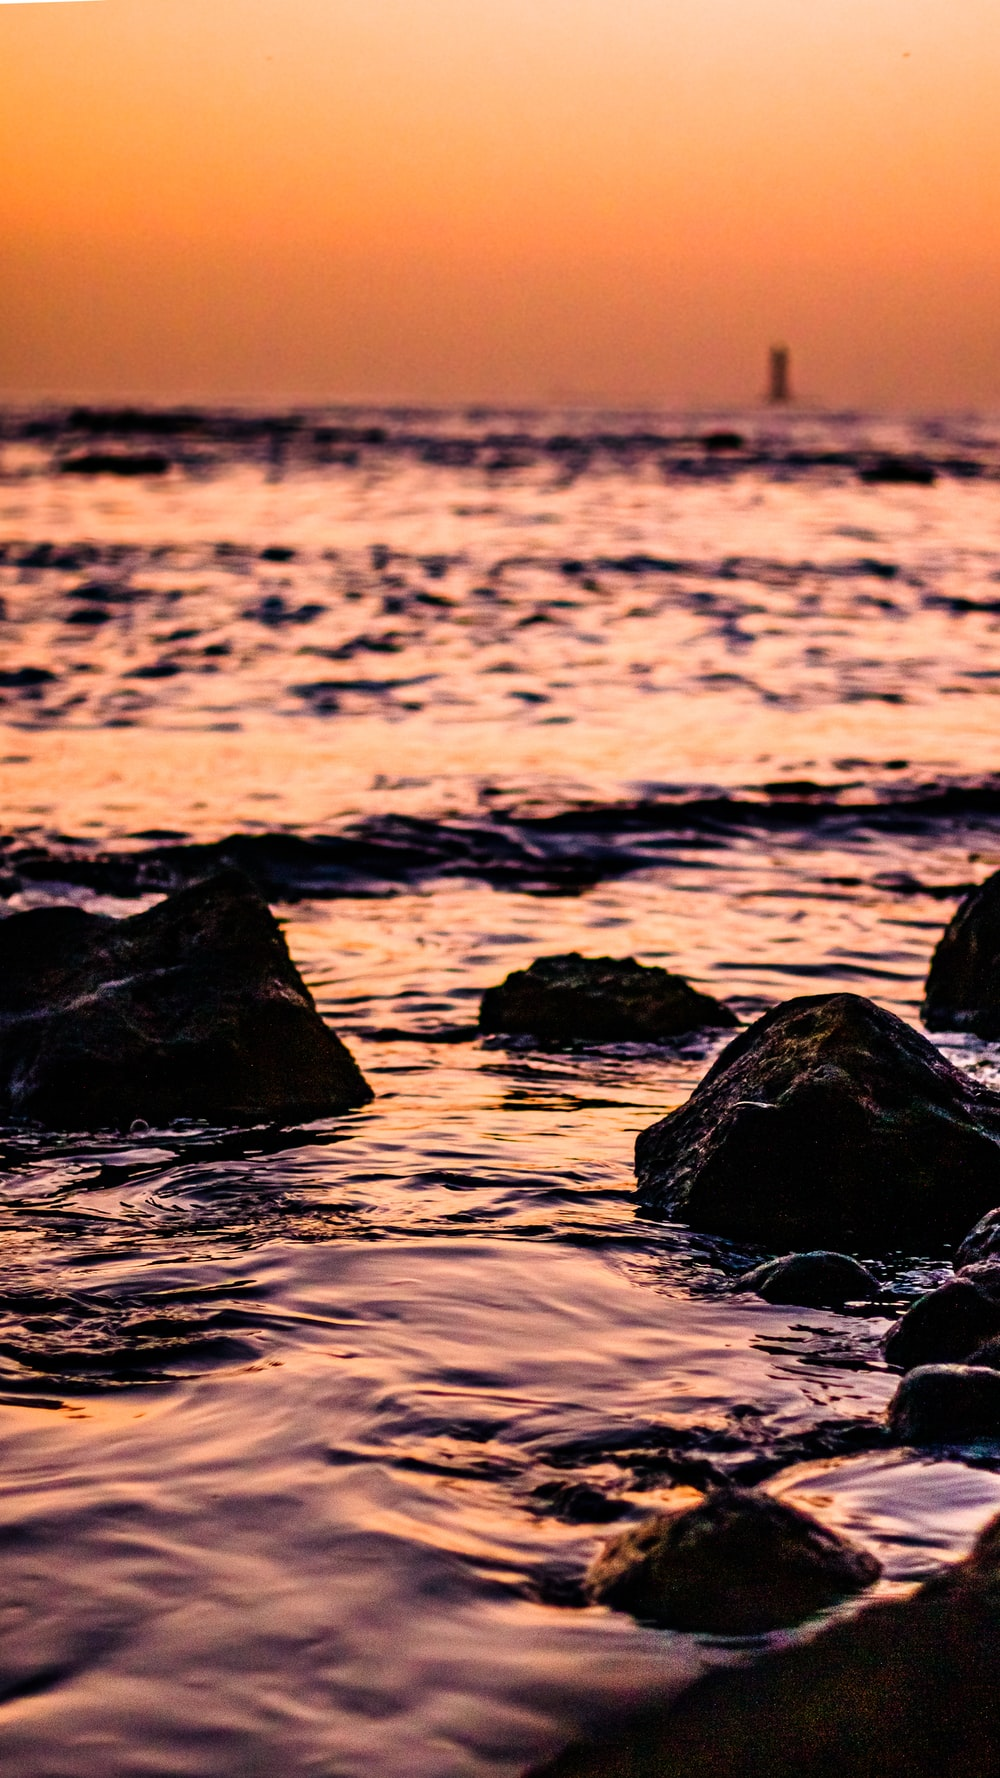 black rocks on body of water during sunset